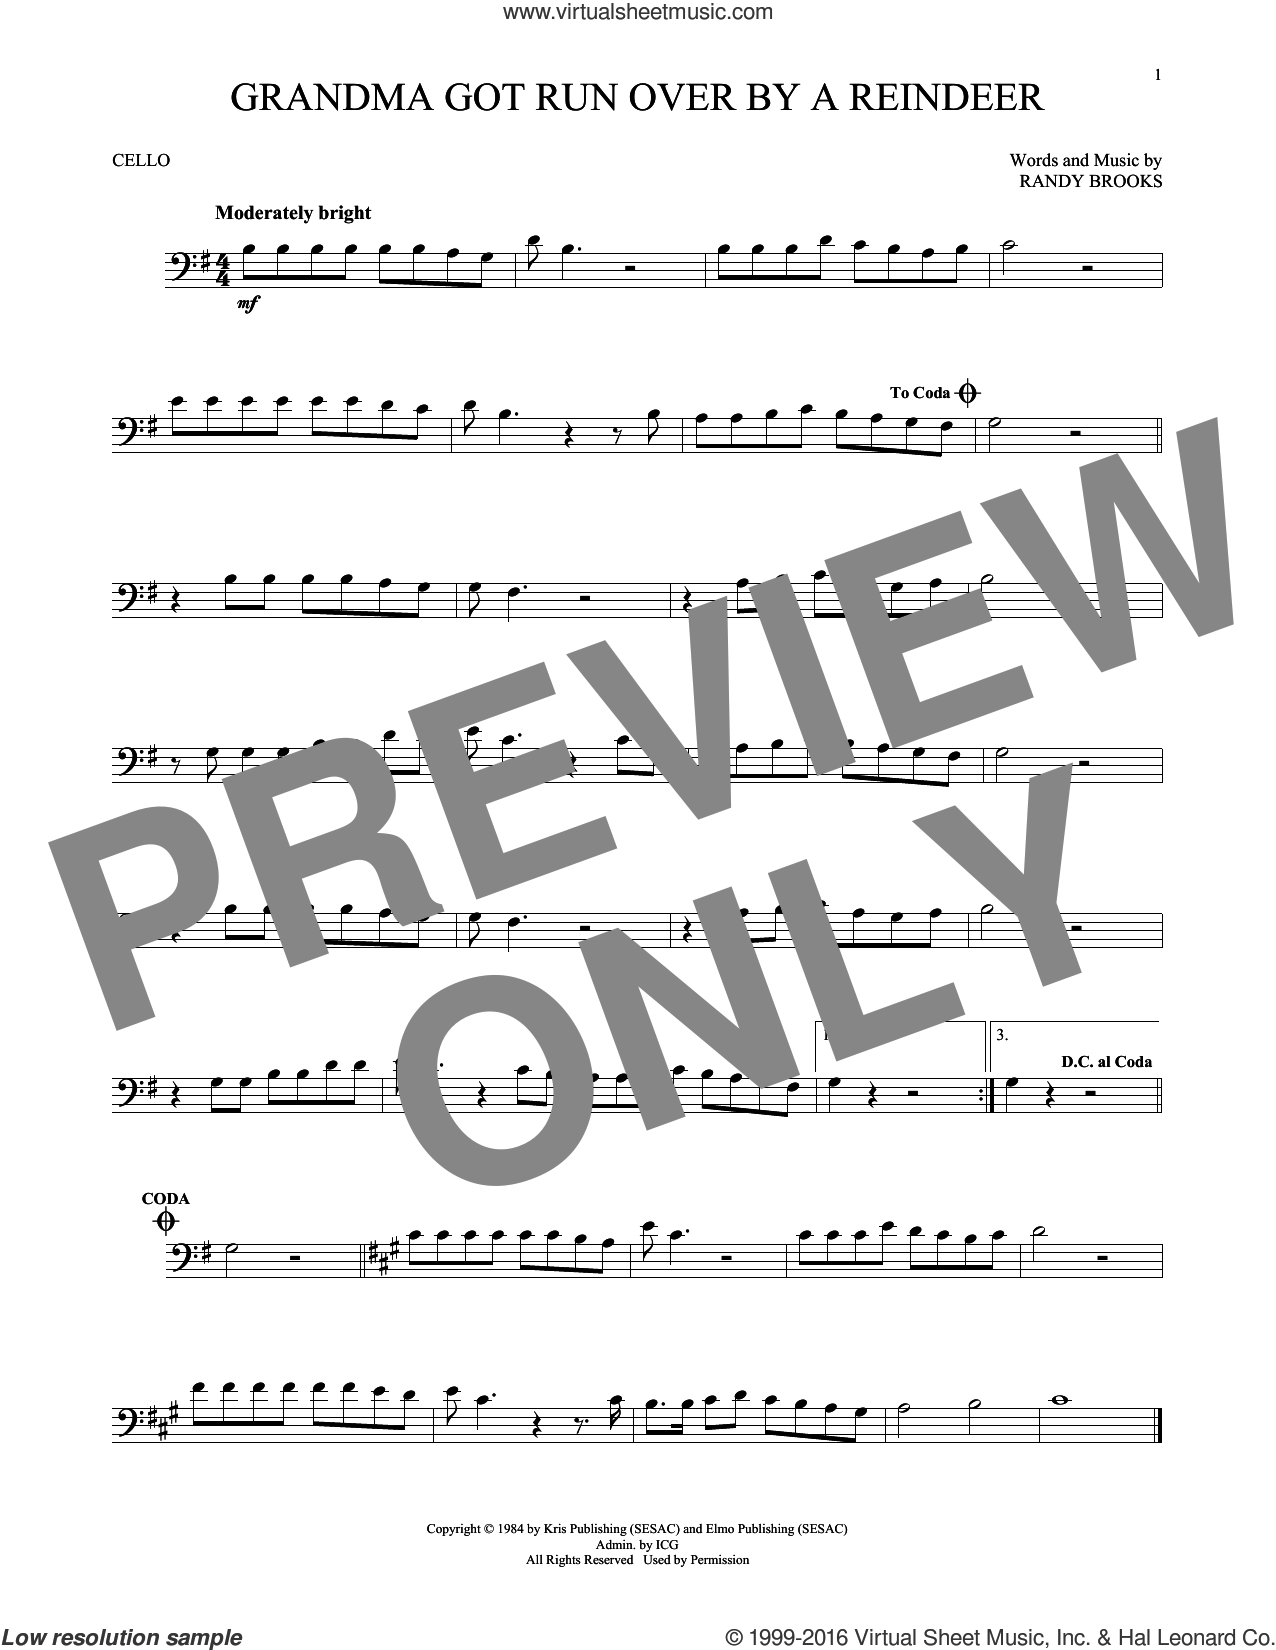 Grandma Got Run Over By A Reindeer sheet music for cello solo by Randy Brooks, intermediate